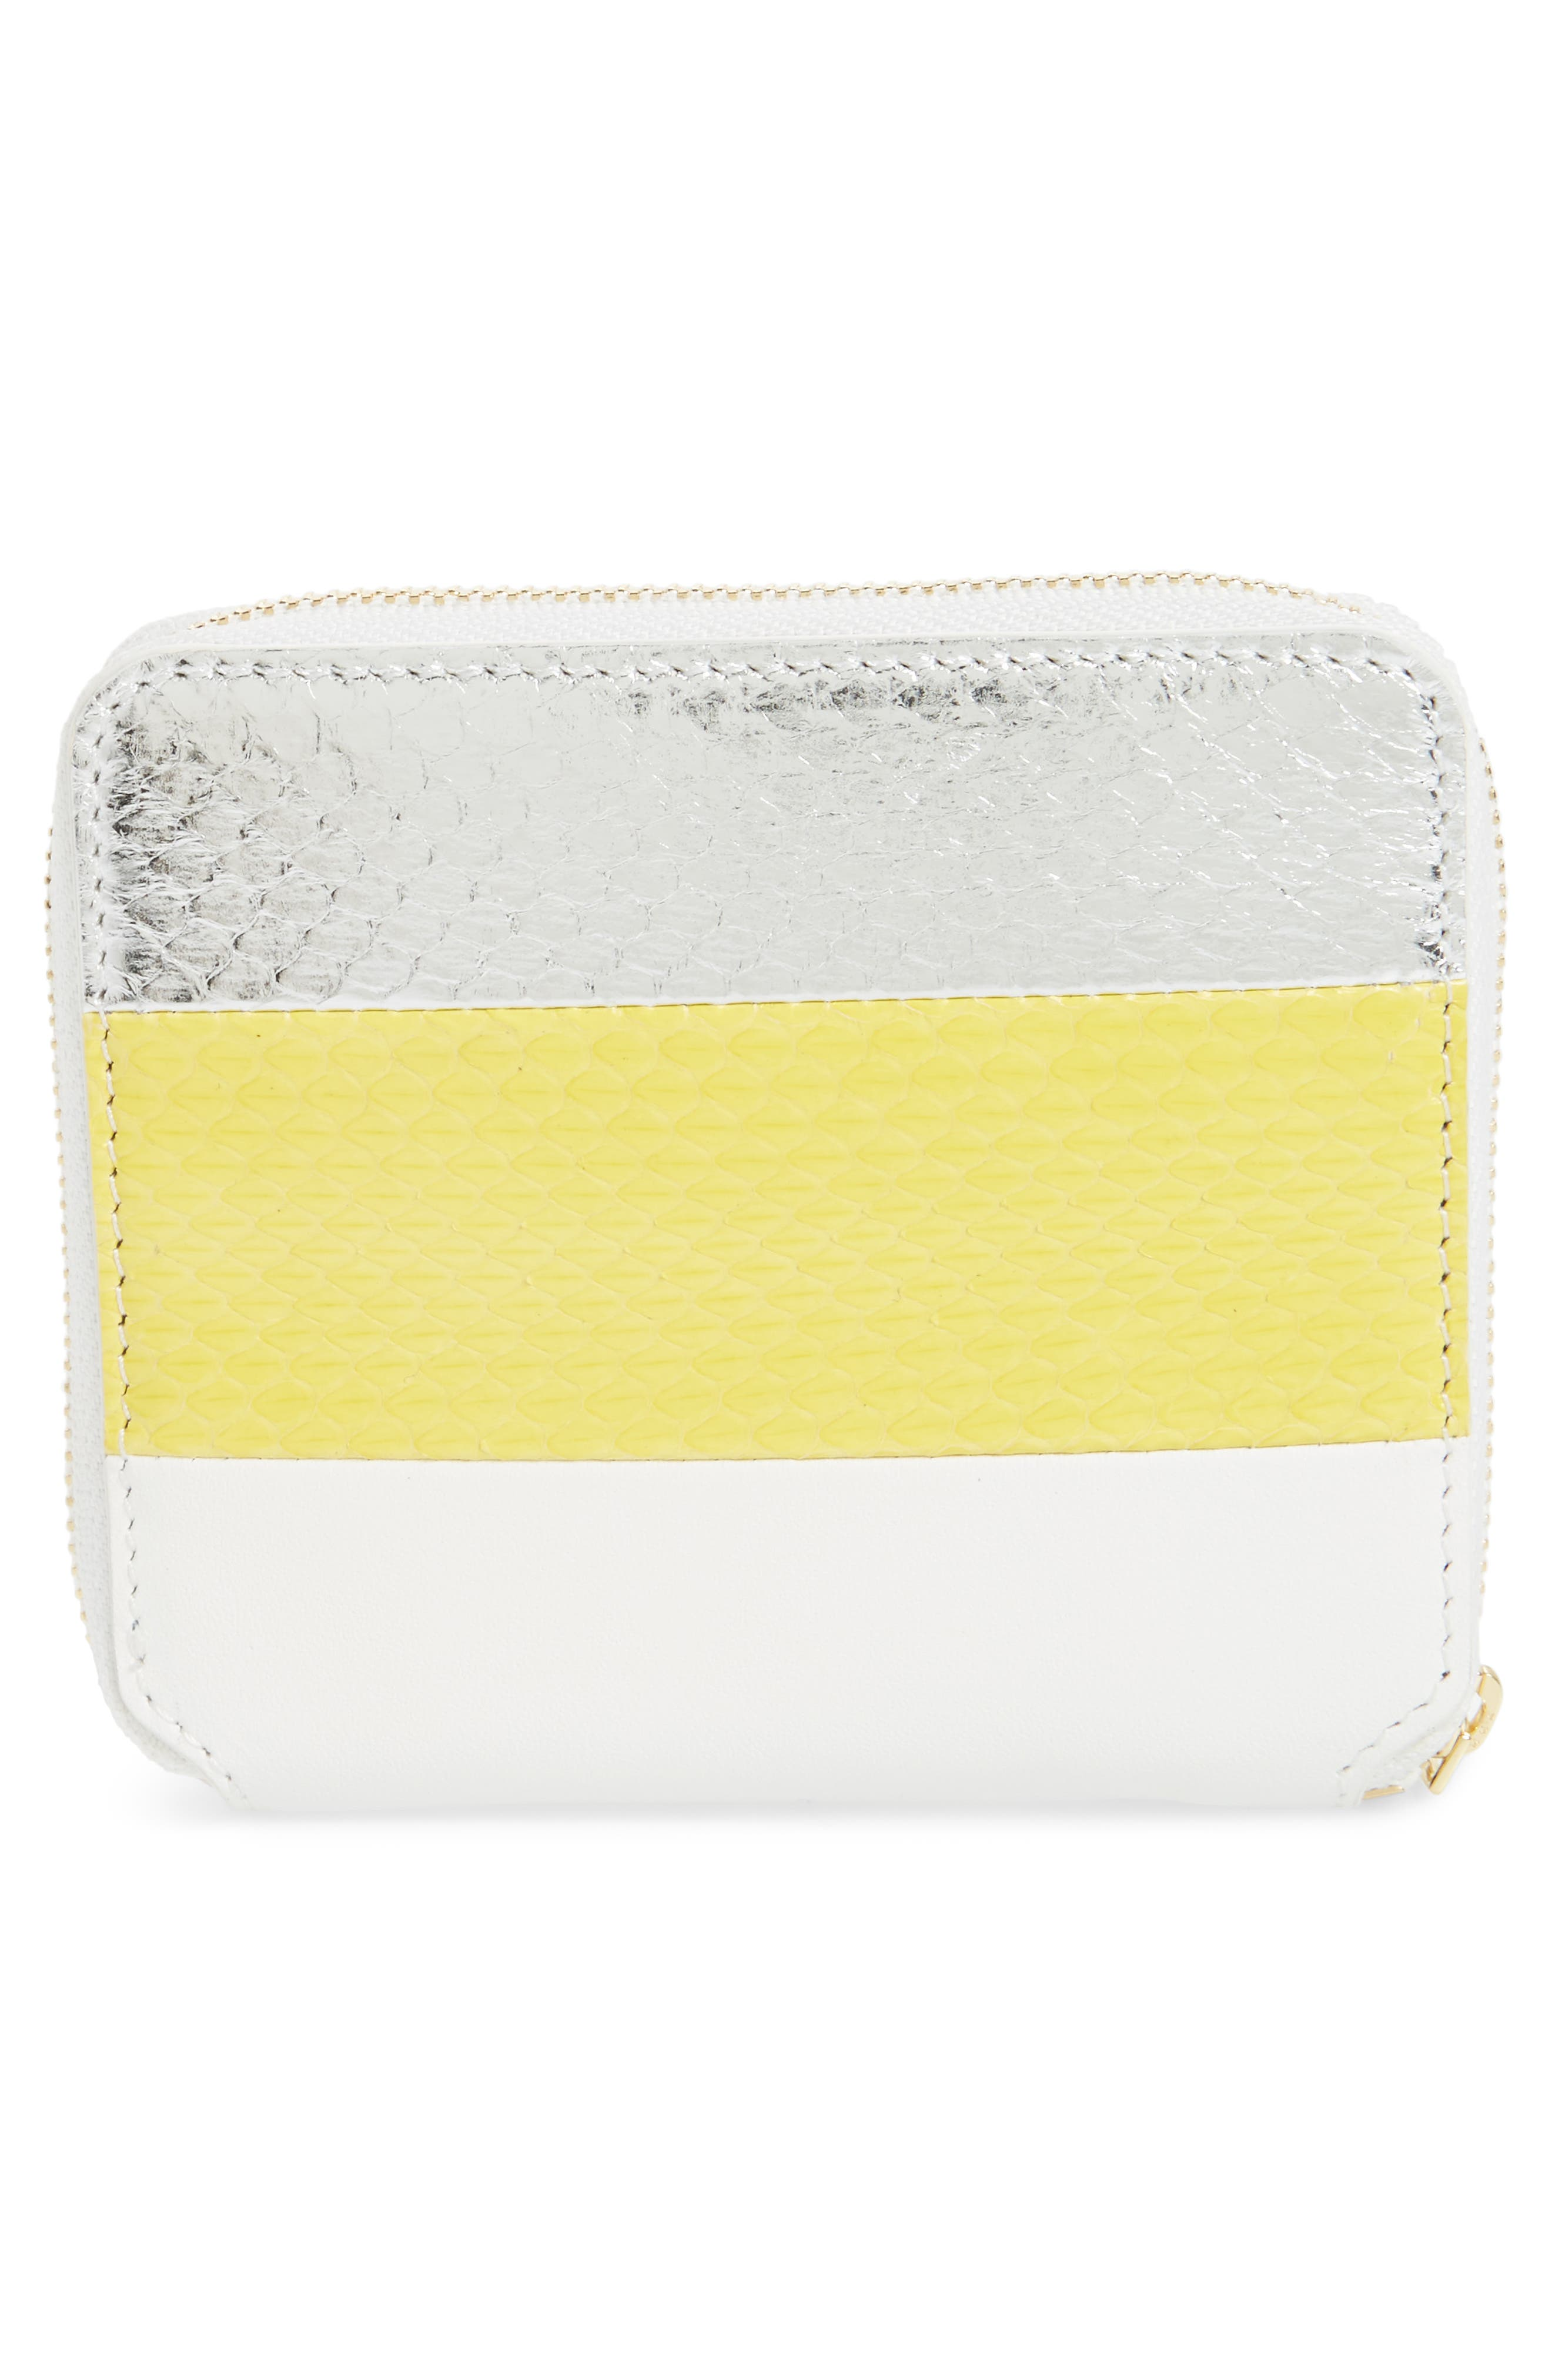 Small Leather & Genuine Snakeskin Zip Wallet,                             Alternate thumbnail 4, color,                             700